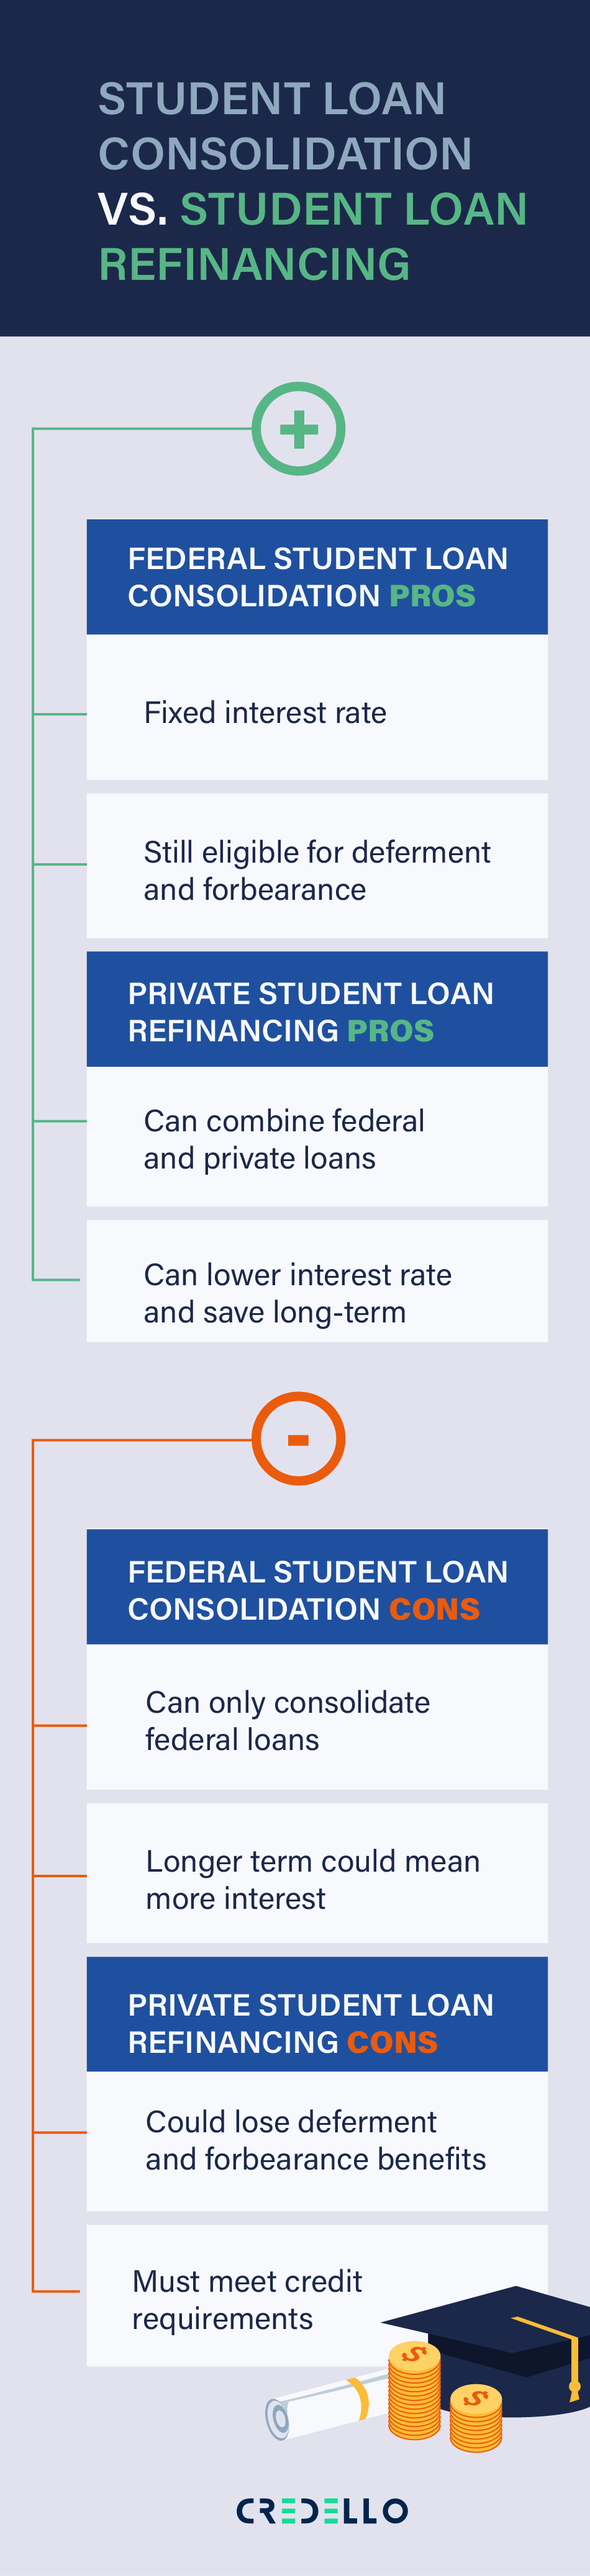 Learn the difference between Student loan consolidation and student loan refinancing